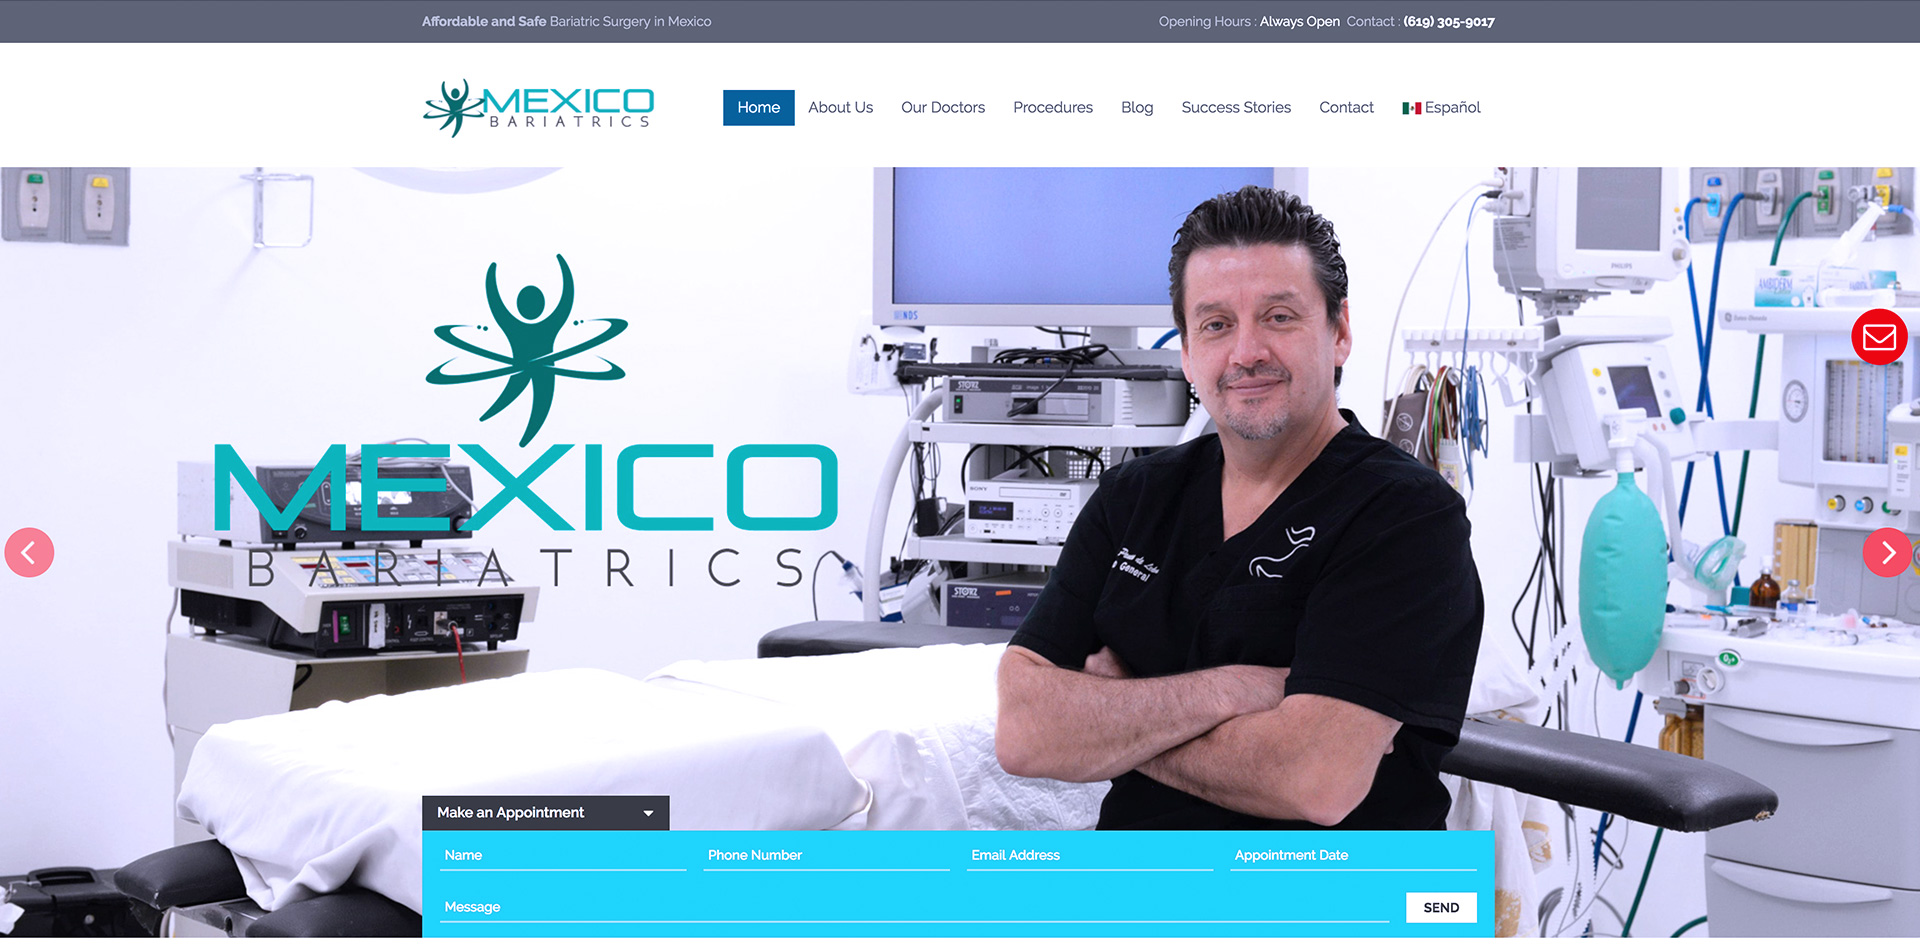 Mexico Bariatrics Center : Weight Loss Surgery in Mexico